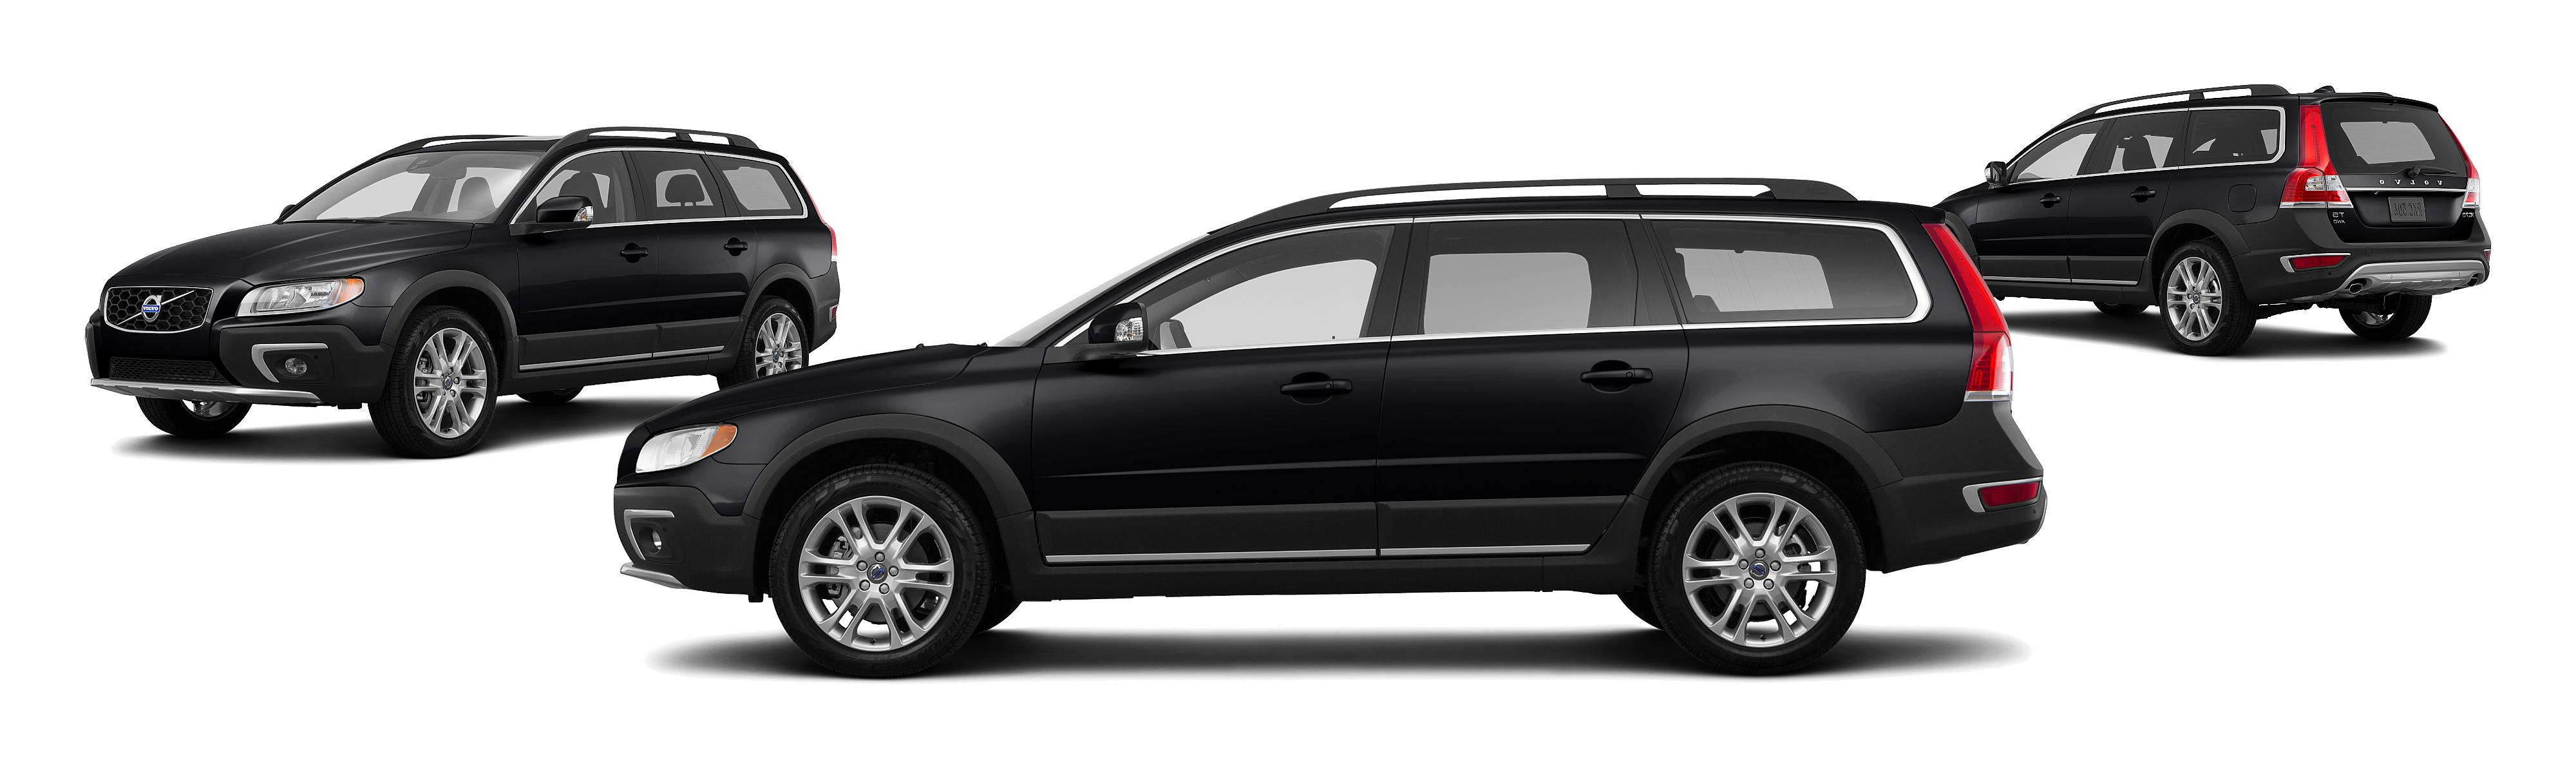 car value of in suv the nj service smythe repair ny htm dealership and volvo customers for manhattan deals lease